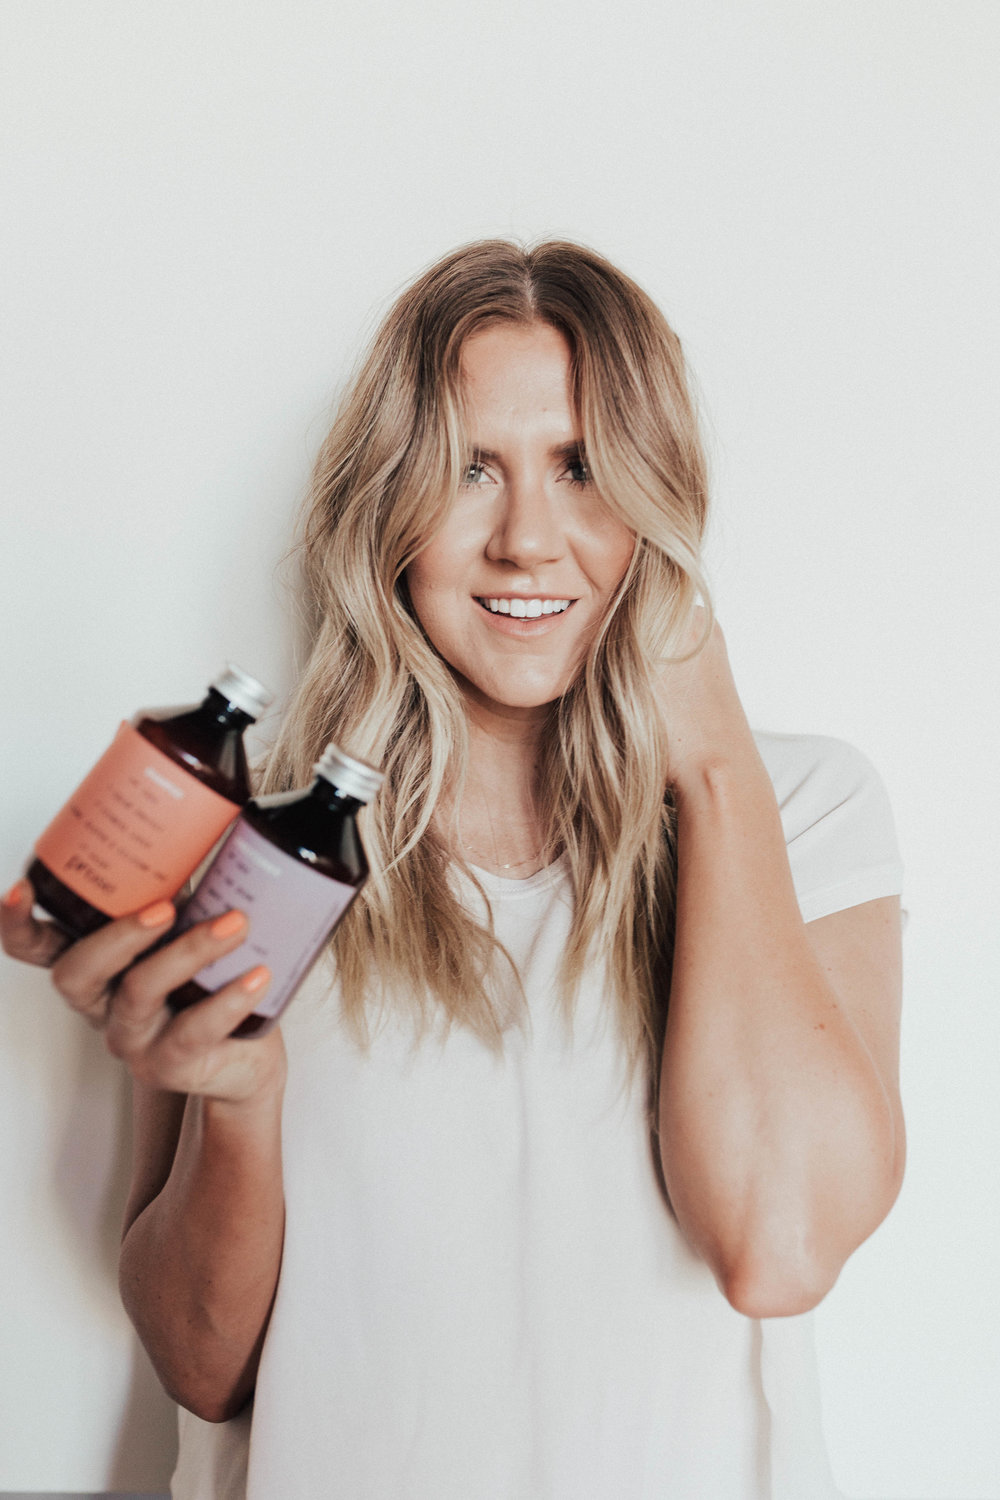 via Thea: Prose clean beauty hair care